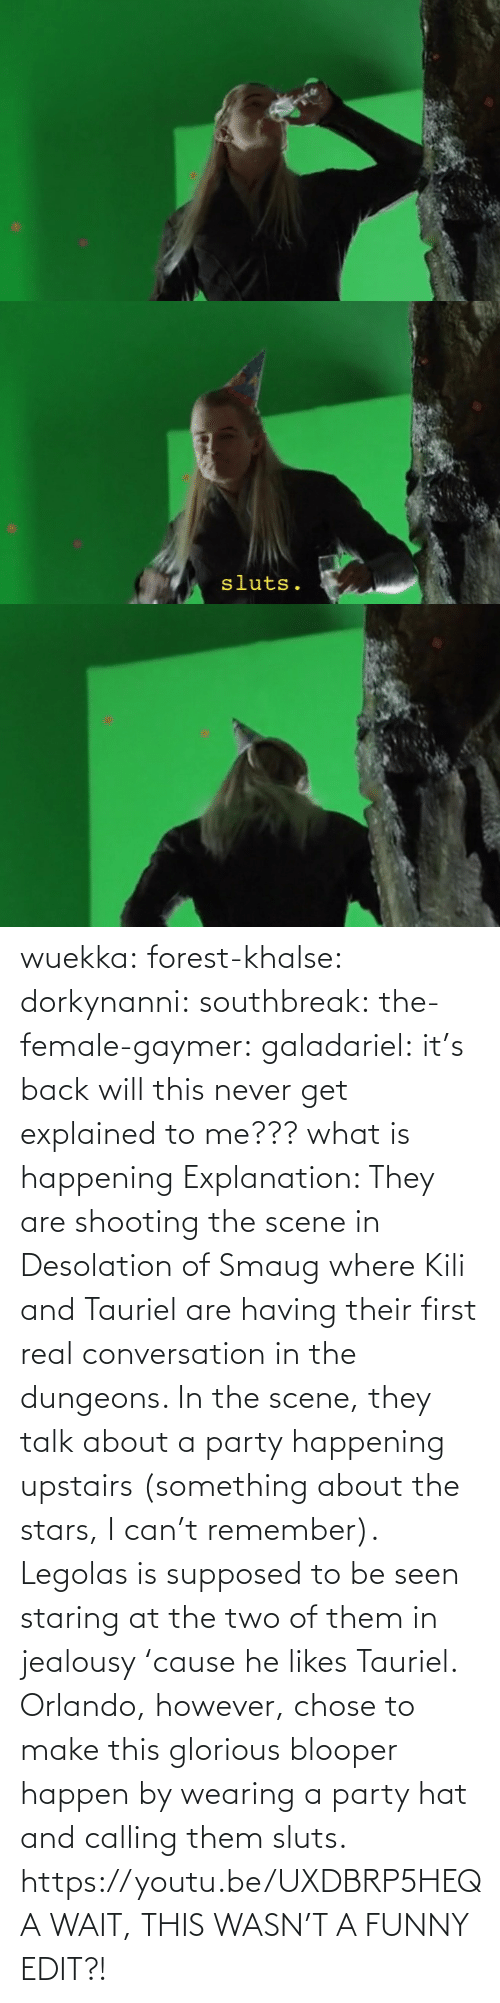 What Is: wuekka: forest-khalse:   dorkynanni:  southbreak:   the-female-gaymer:   galadariel:  it's back   will this never get explained to me???    what is happening    Explanation:  They are shooting the scene in Desolation of Smaug where Kili and Tauriel are having their first real conversation in the dungeons.  In the scene, they talk about a party happening upstairs (something about the stars, I can't remember). Legolas is supposed to be seen staring at the two of them in jealousy 'cause he likes Tauriel.  Orlando, however, chose to make this glorious blooper happen by wearing a party hat and calling them sluts.    https://youtu.be/UXDBRP5HEQA    WAIT, THIS WASN'T A FUNNY EDIT?!